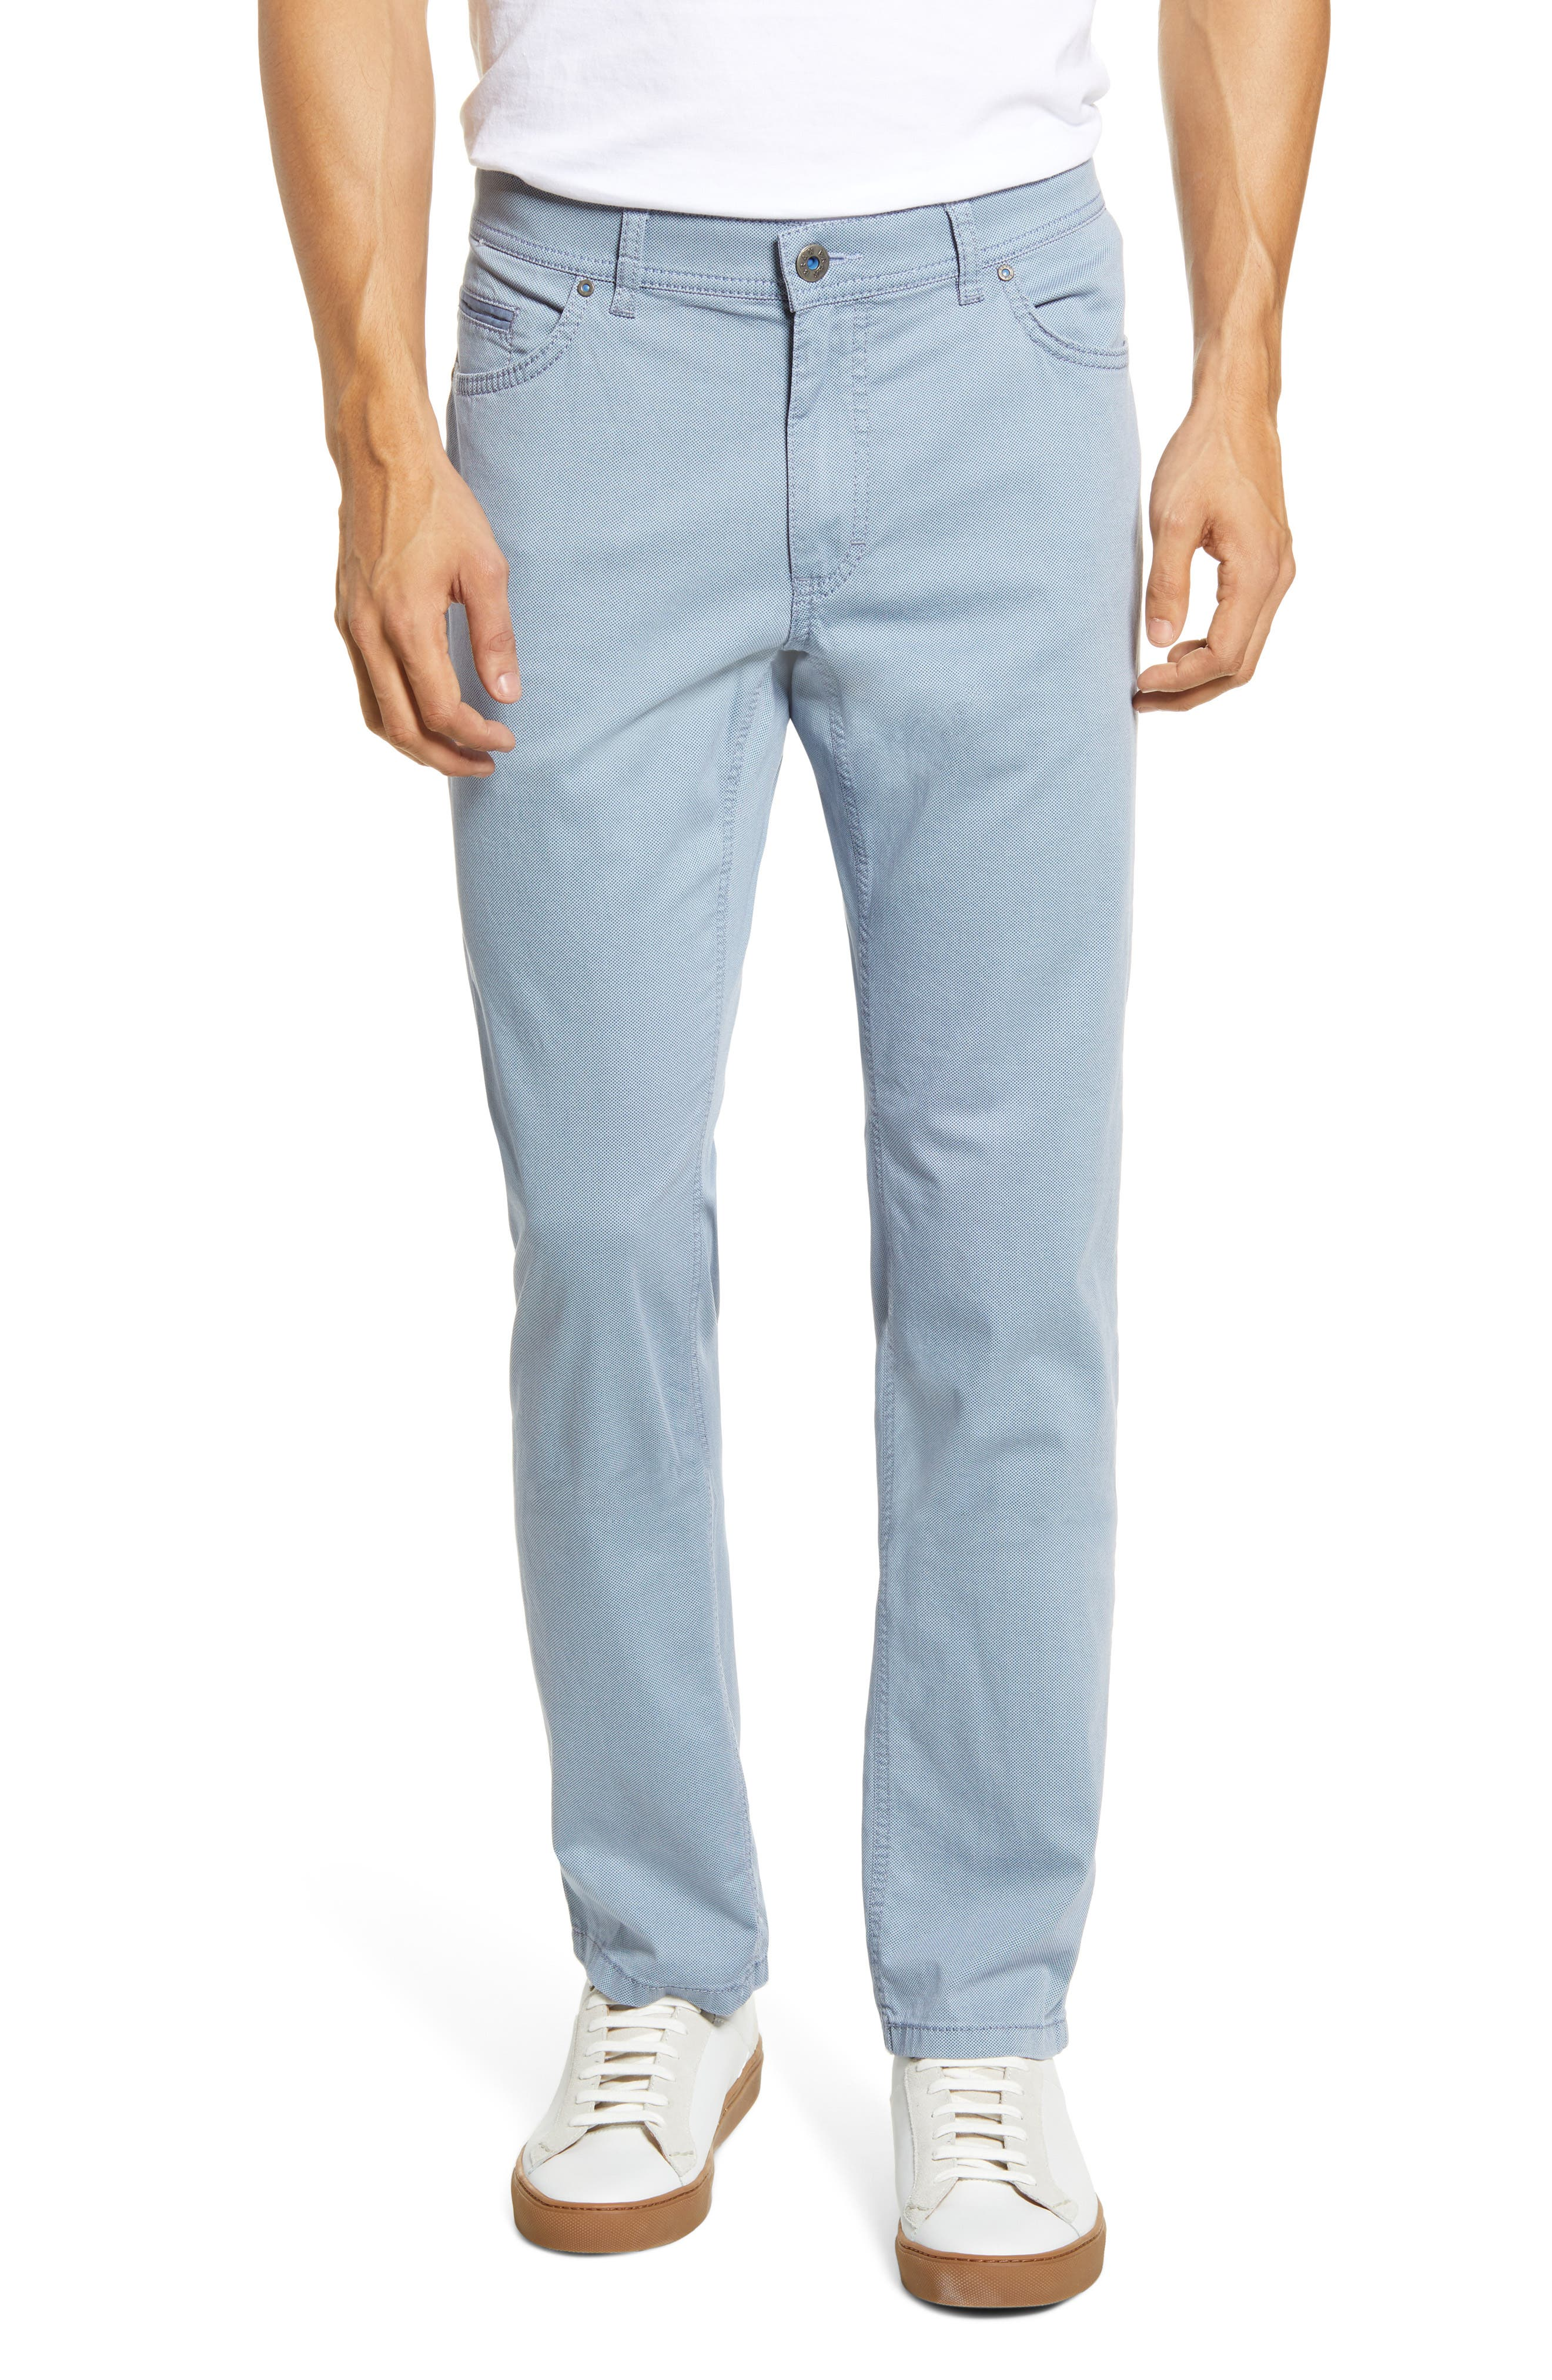 A casual five-pocket cut defines versatile pants cut from stretchy cotton treated with a smart finishing process for Tritone coloration. Style Name: Brax Cooper Five Pocket Stretch Cotton Pants. Style Number: 6002786. Available in stores.